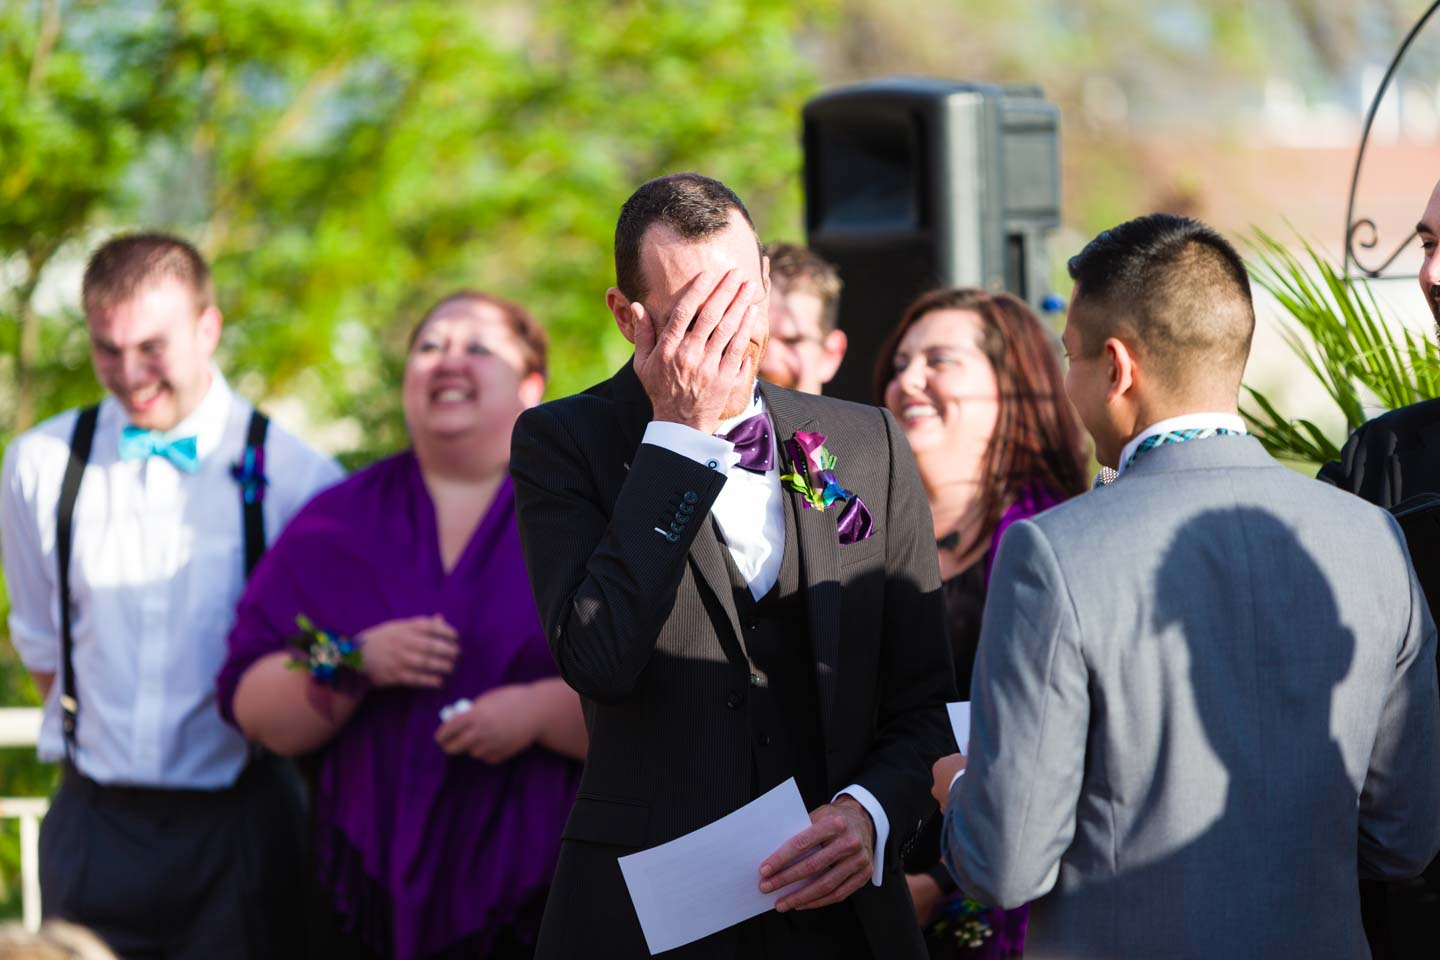 Groom does a facepalm